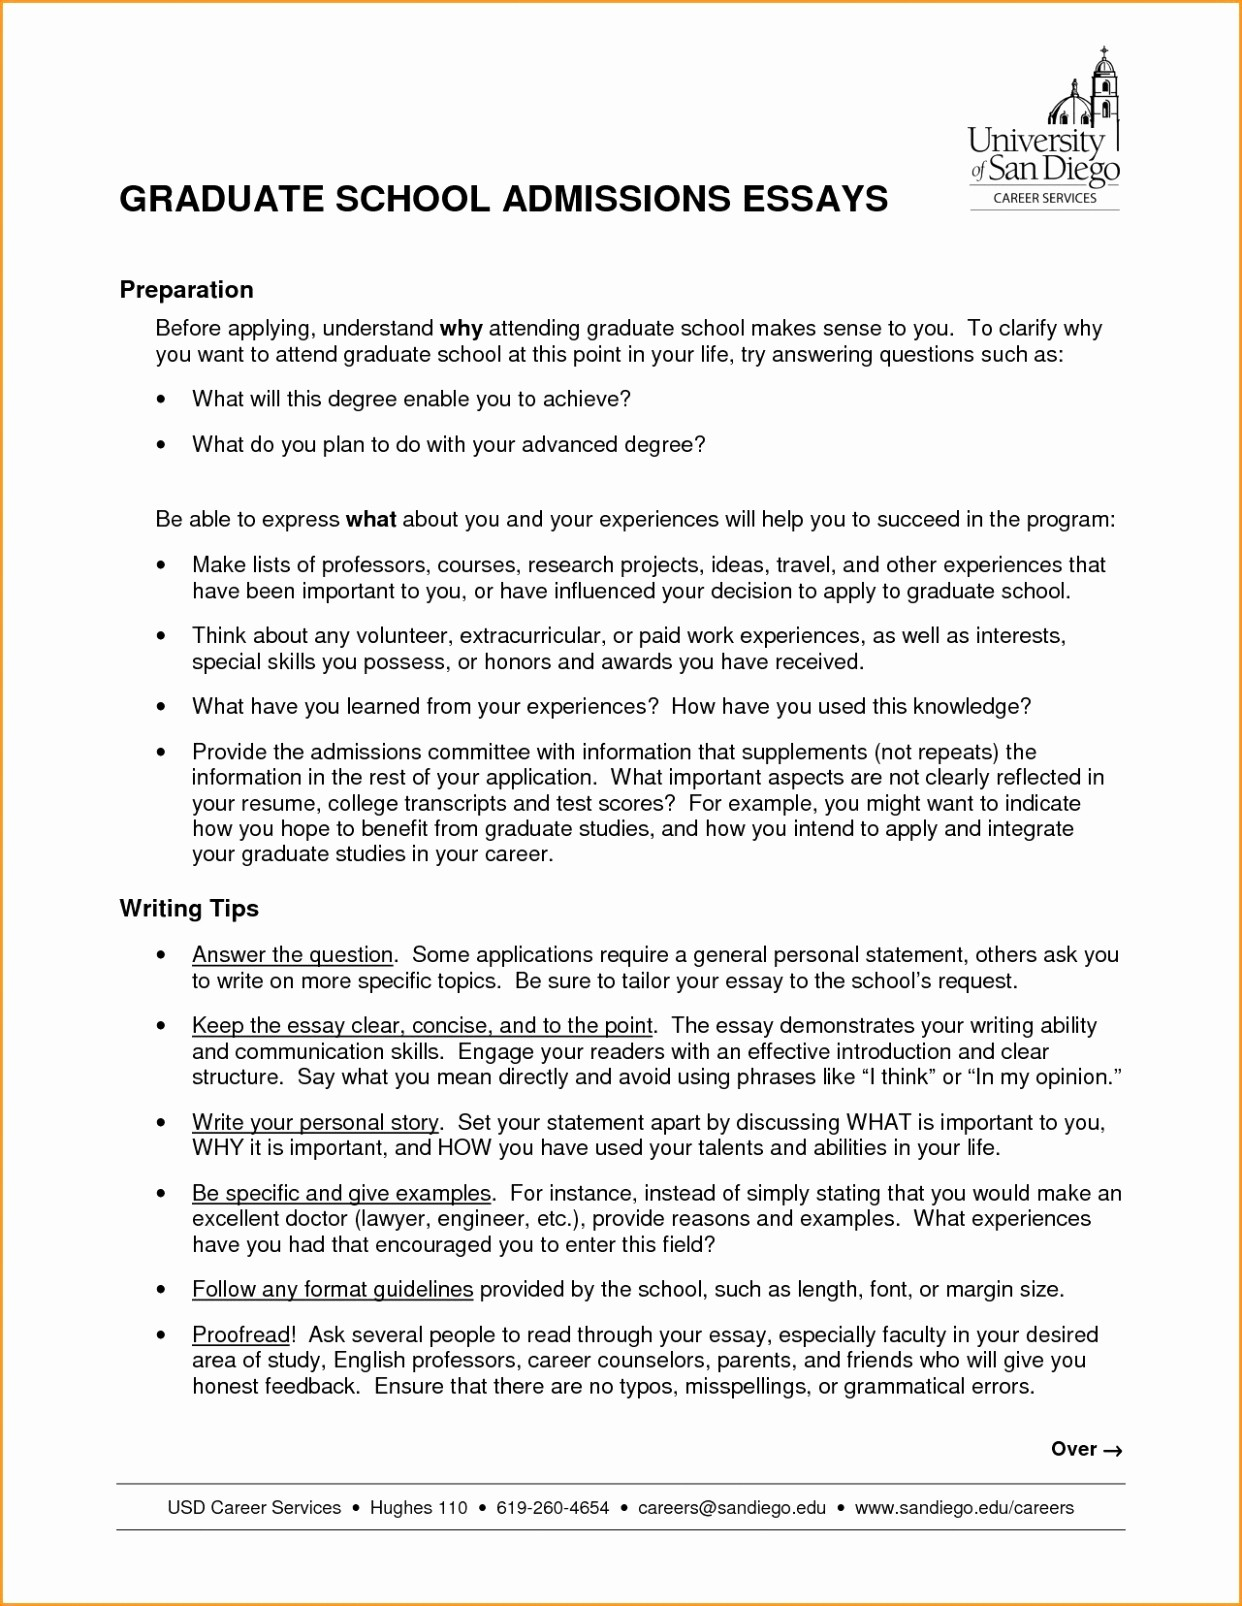 Law School Resumes - Law School Cover Letter New Sample Law School Resume Jaowebdesign